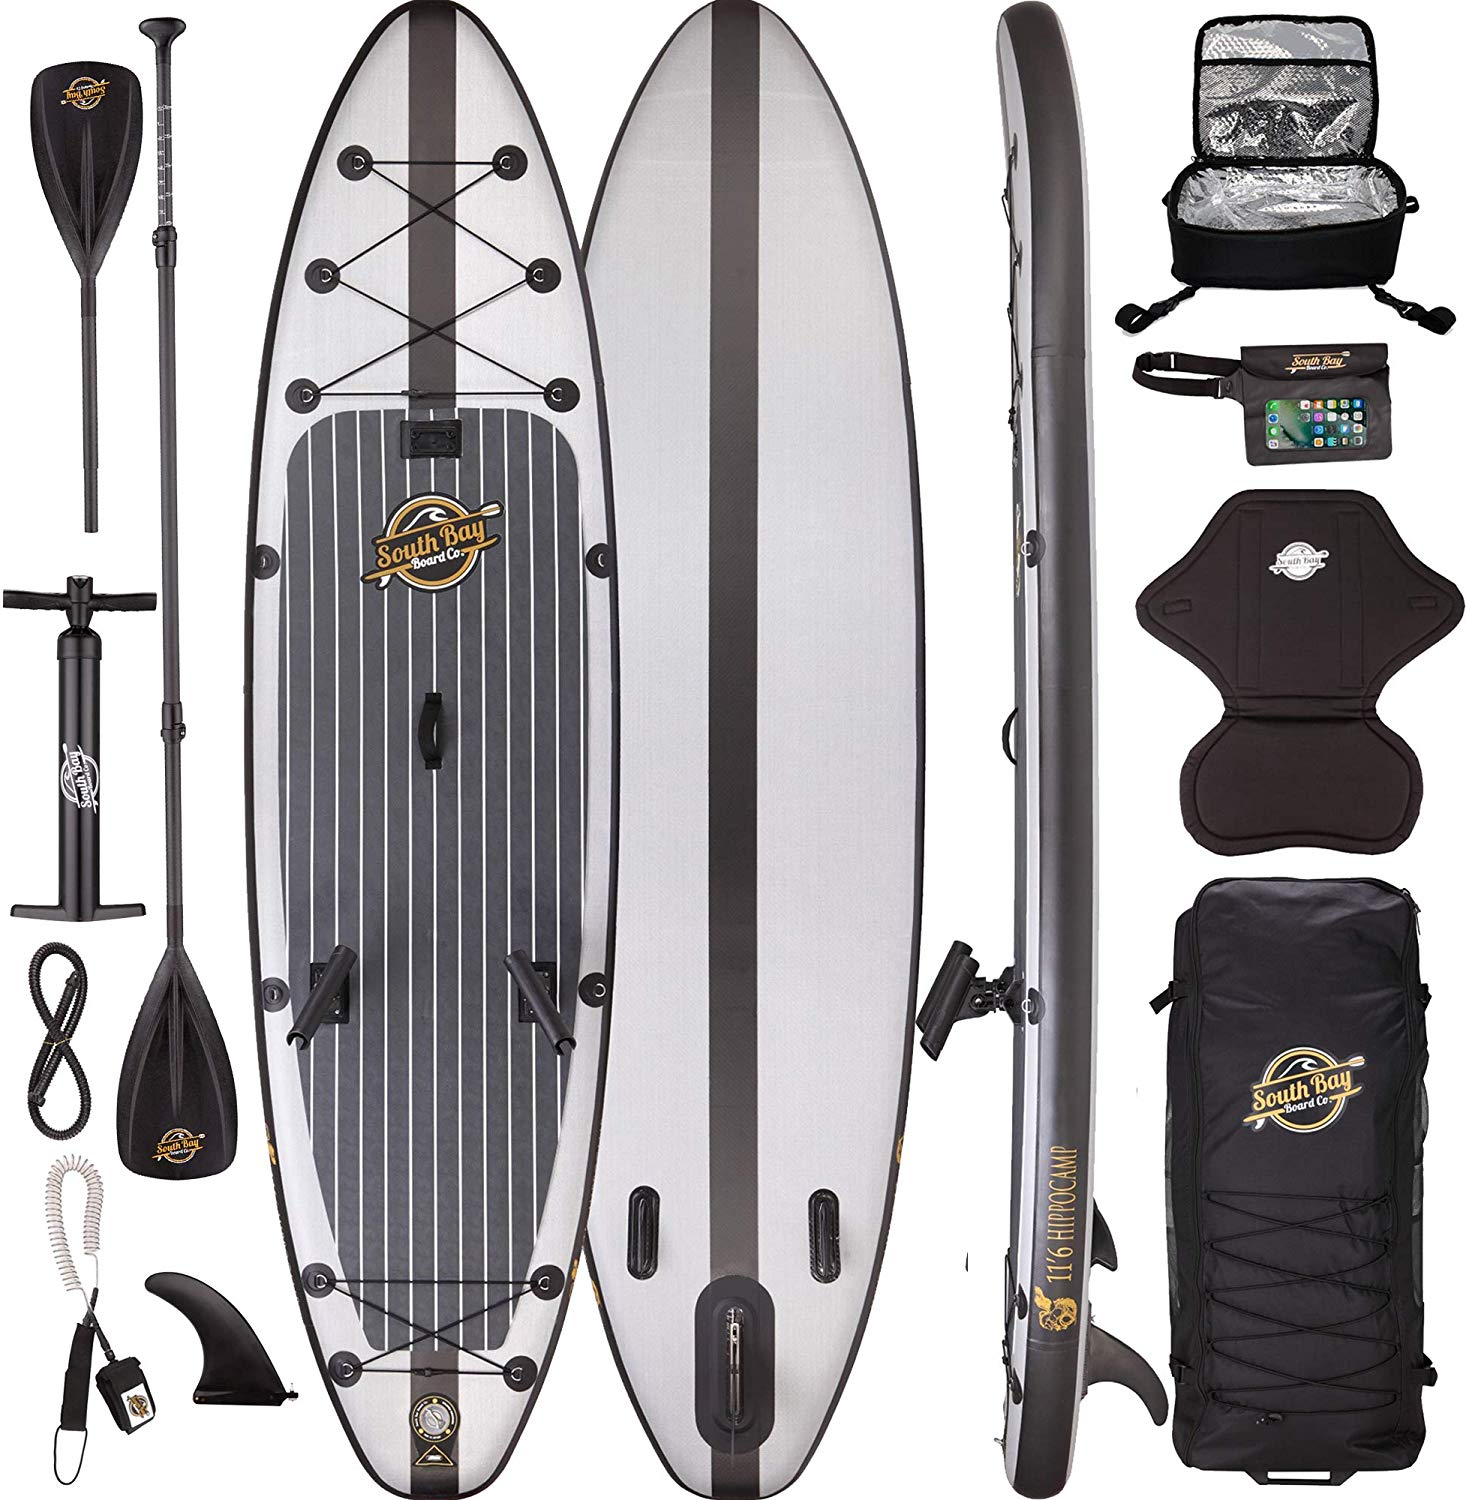 Hippocamp Fishing Premium Inflatable Stand Up Paddle Board